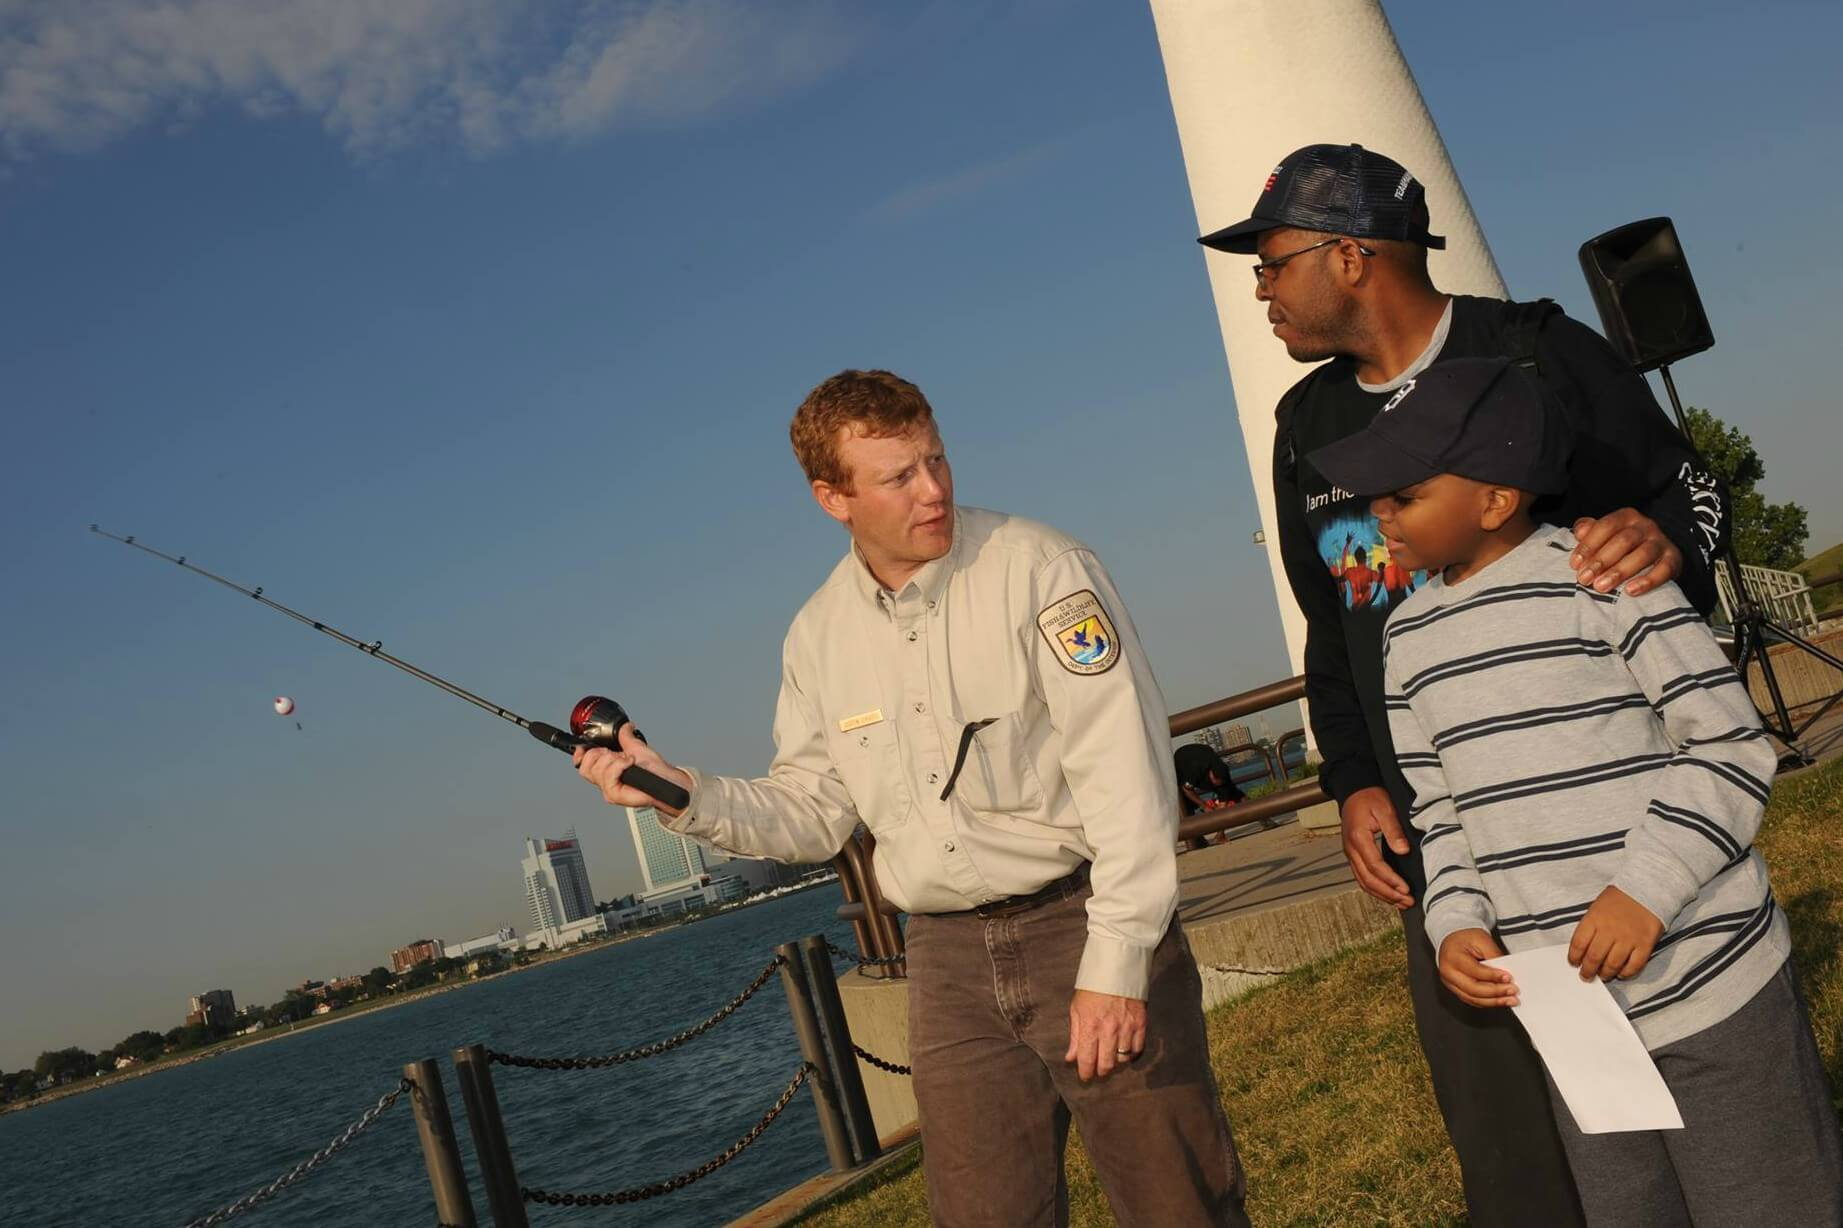 Fisheries Day: Get Hooked On Fishing!